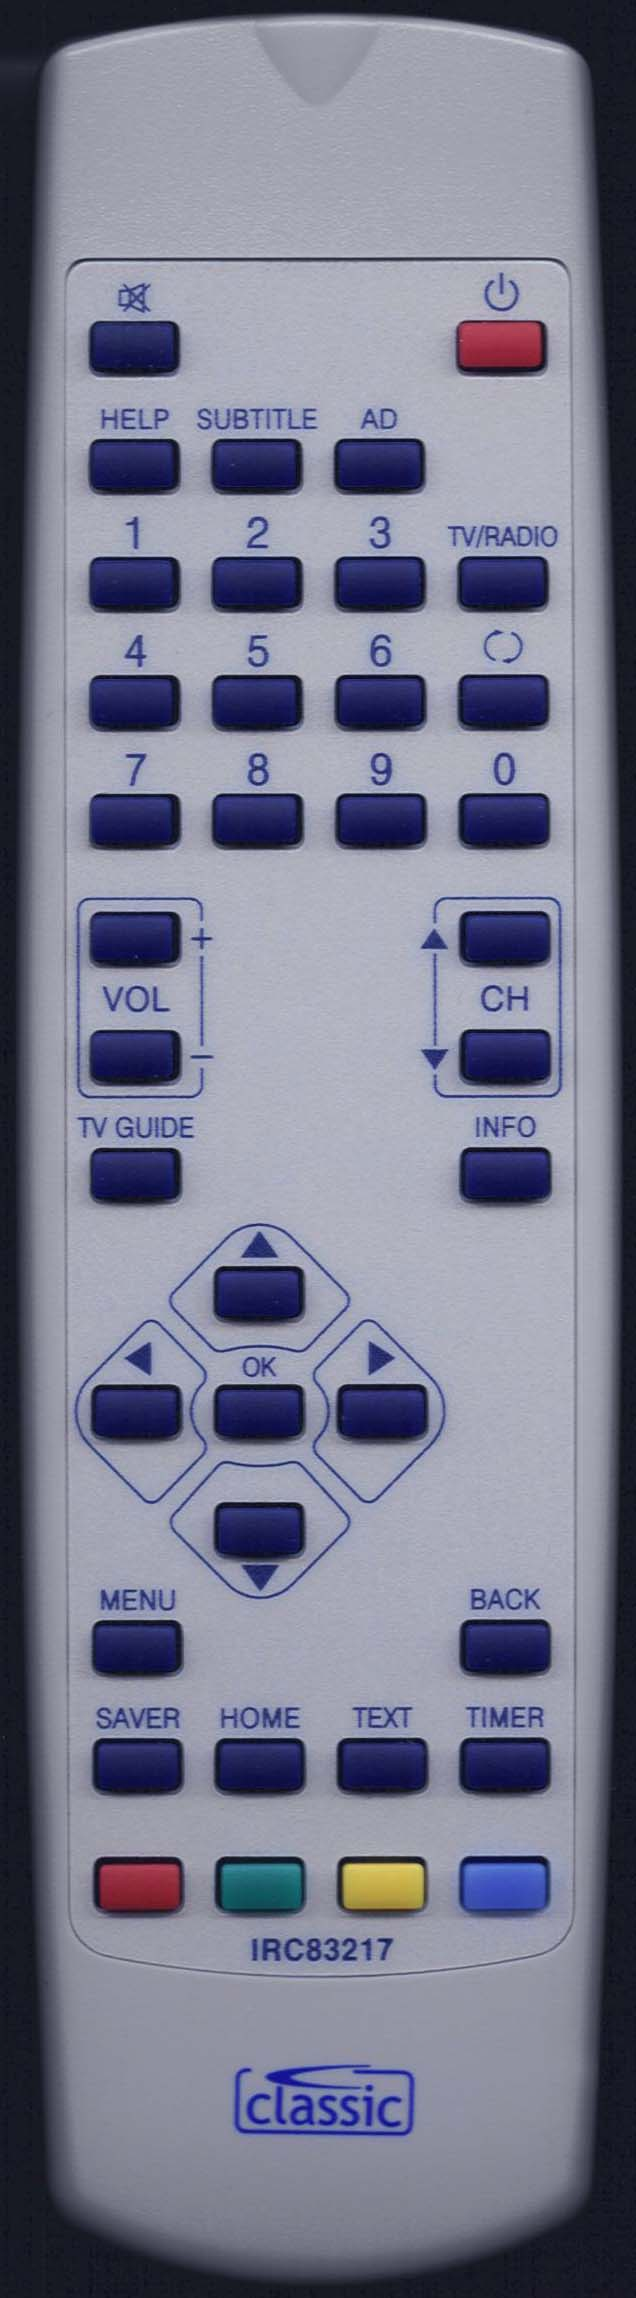 TVONICS MDR240 Replacement Remote Control